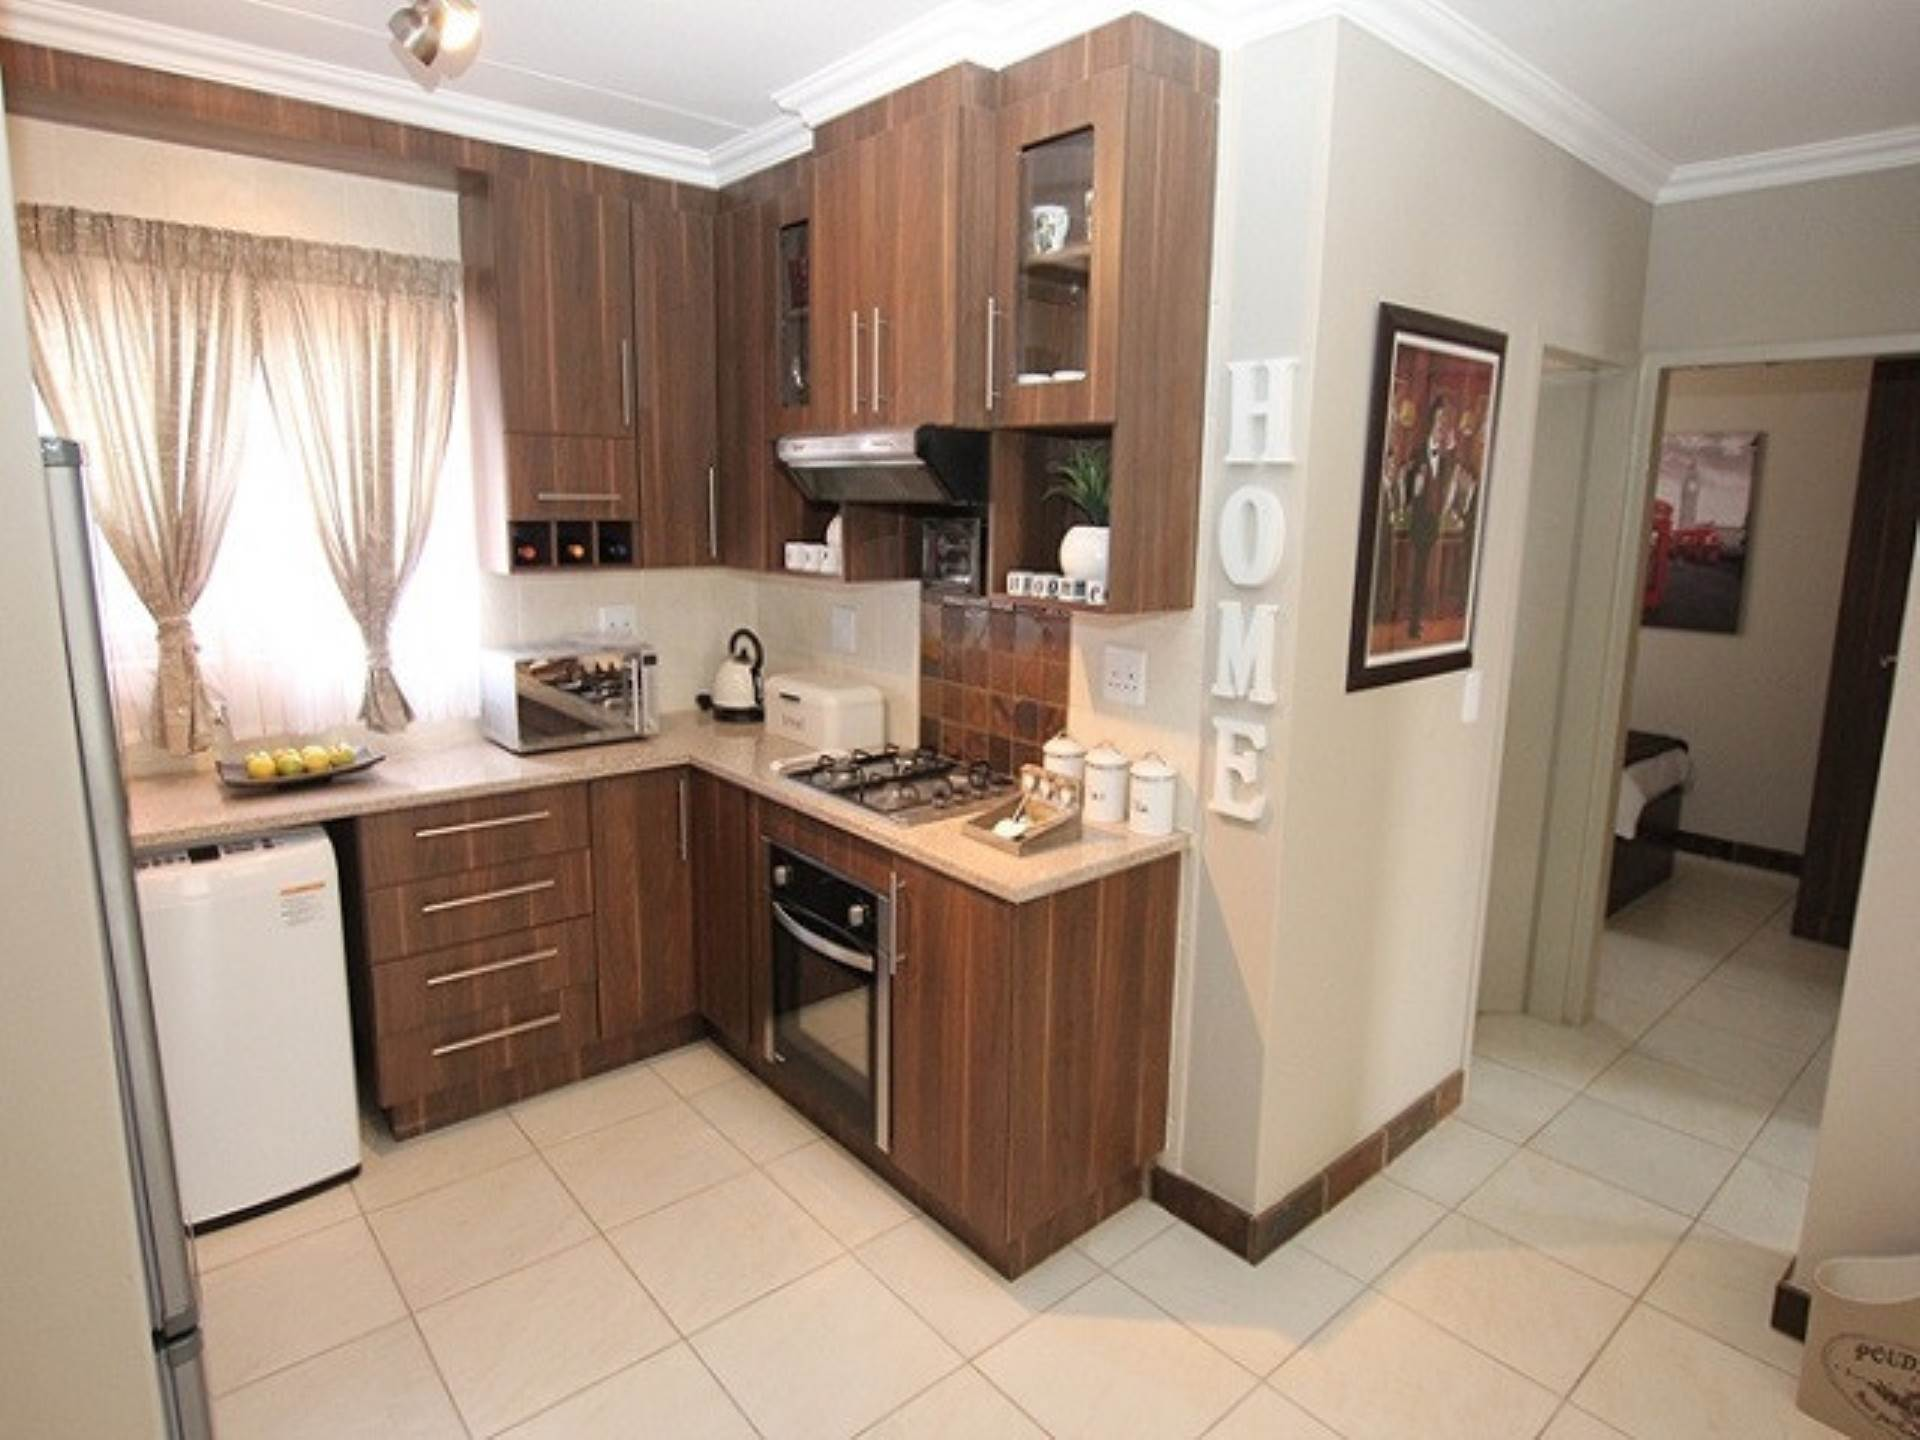 Pretoria, Daspoort Property  | Houses For Sale Daspoort, DASPOORT, Townhouse 2 bedrooms property for sale Price:715,000